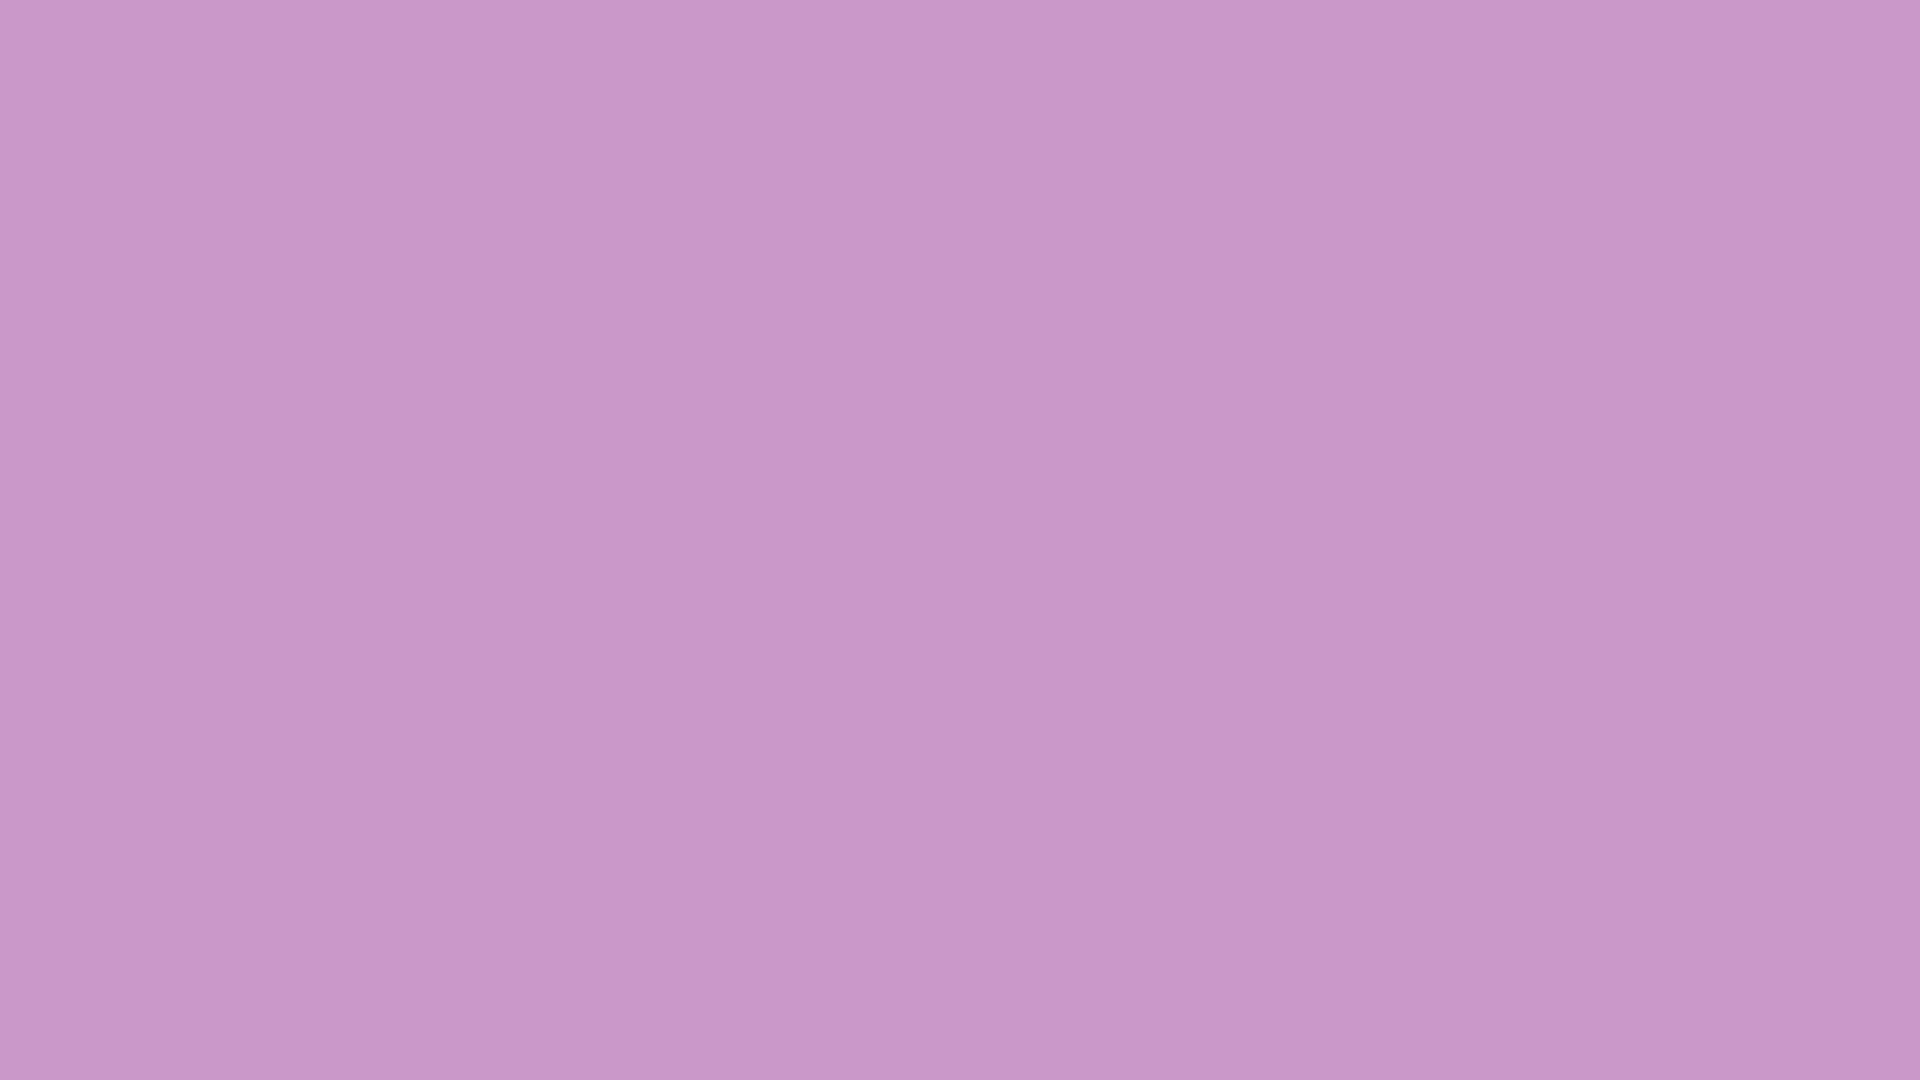 1920x1080 Pastel Violet Solid Color Background